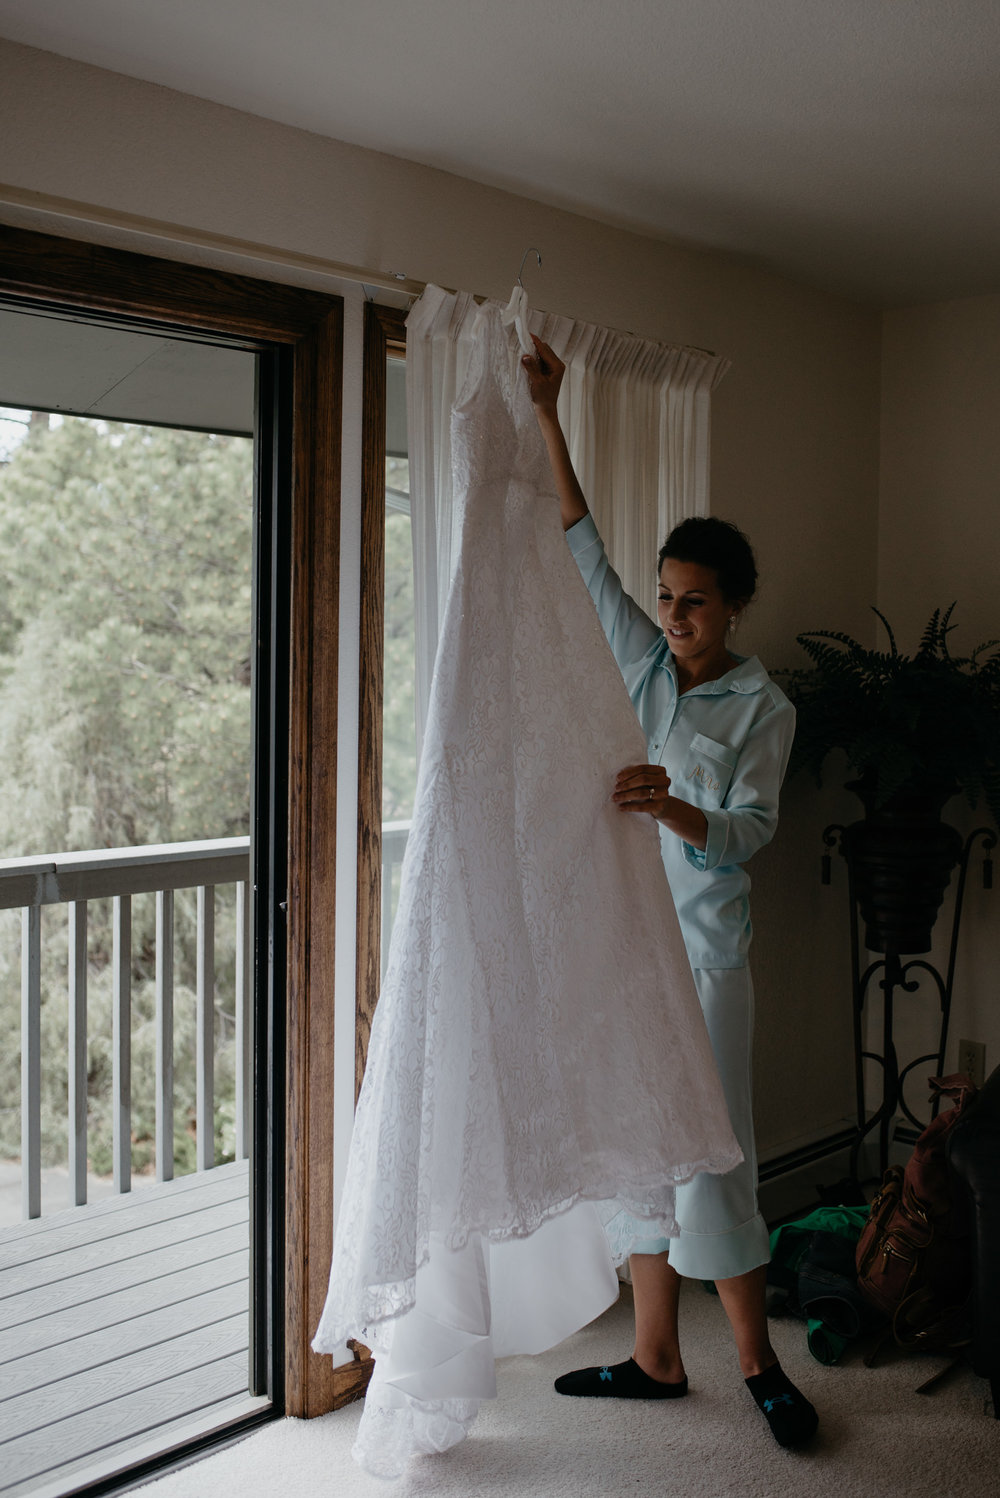 Bride getting dress on. 3M Curve, Rocky Mountain National Park elopement.